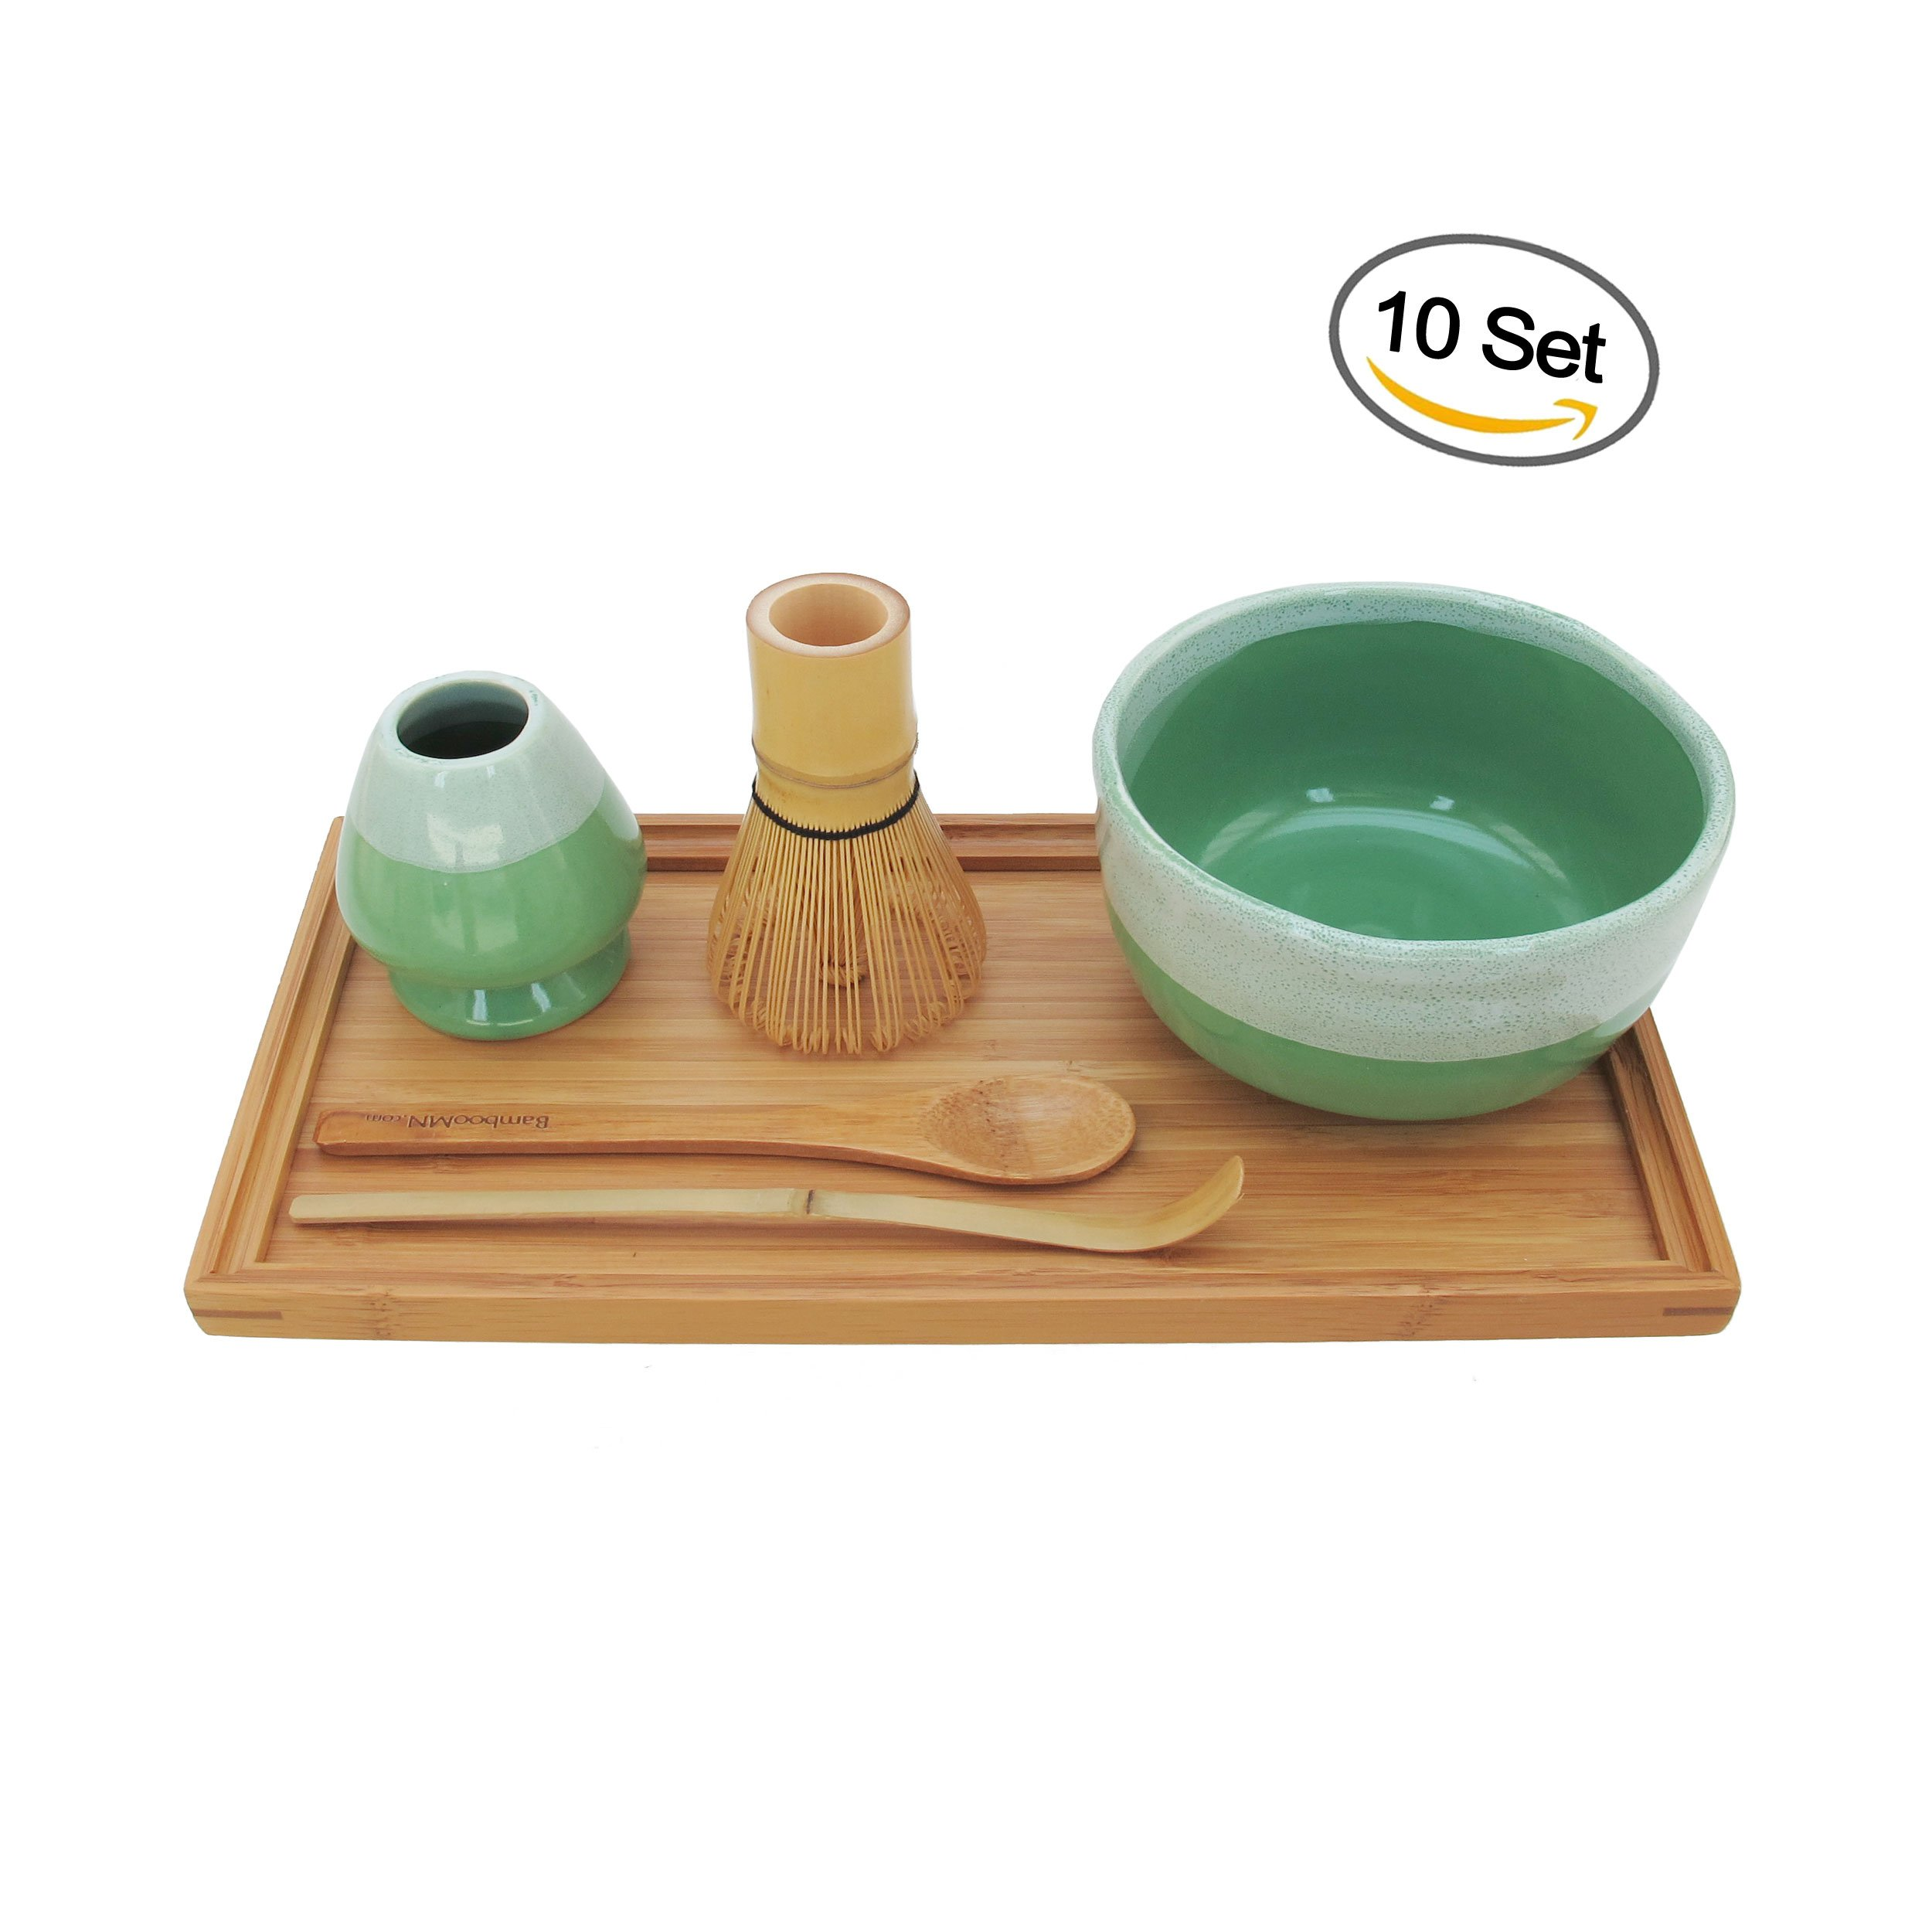 BambooMN Brand - Matcha Bowl Set (Includes Bowl, Rest,Tea Whisk, Chasaku, Tea Spoon & Tray) 10 Sets Mint Green by BambooMN (Image #1)